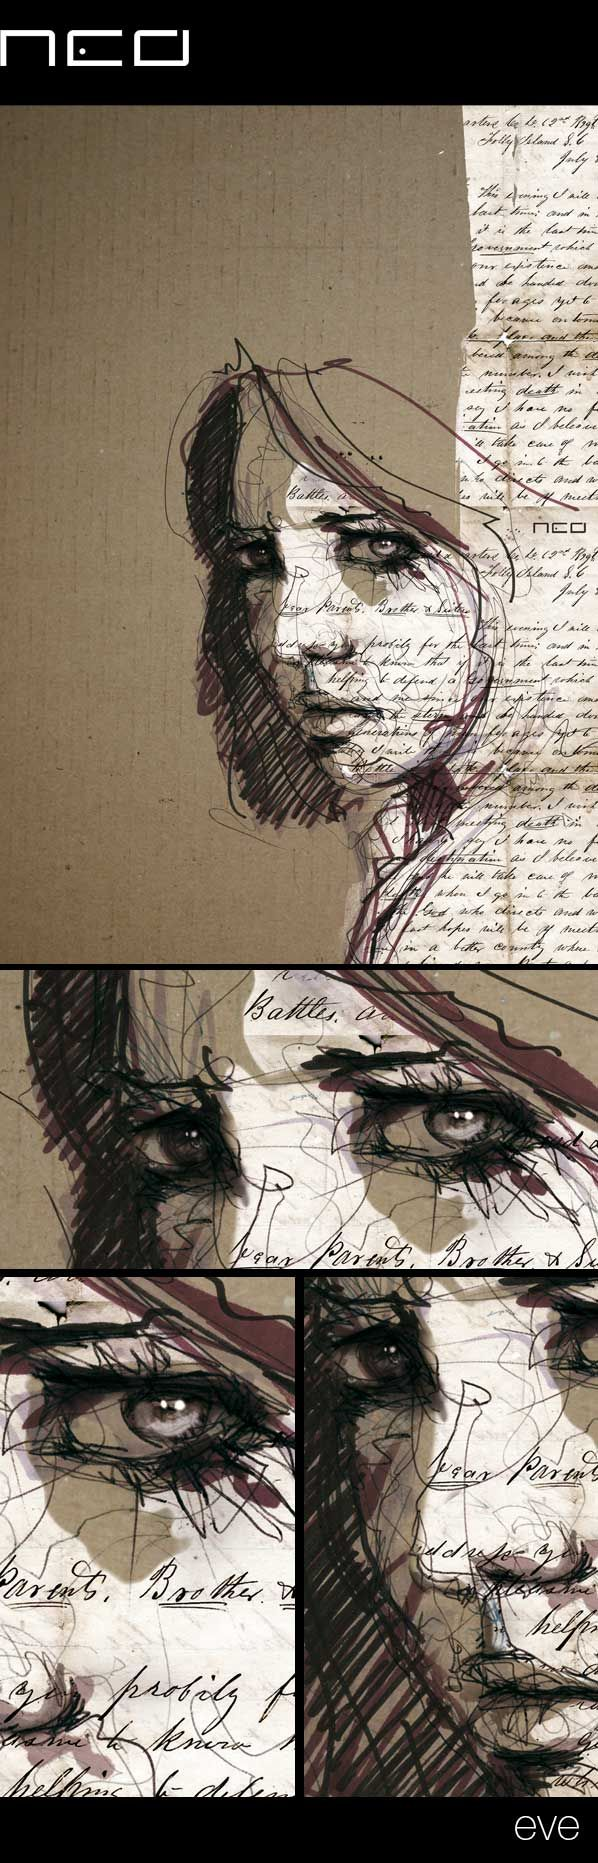 eve by Florian NICOLLE, via Behance I find this piece of art clever and interesting